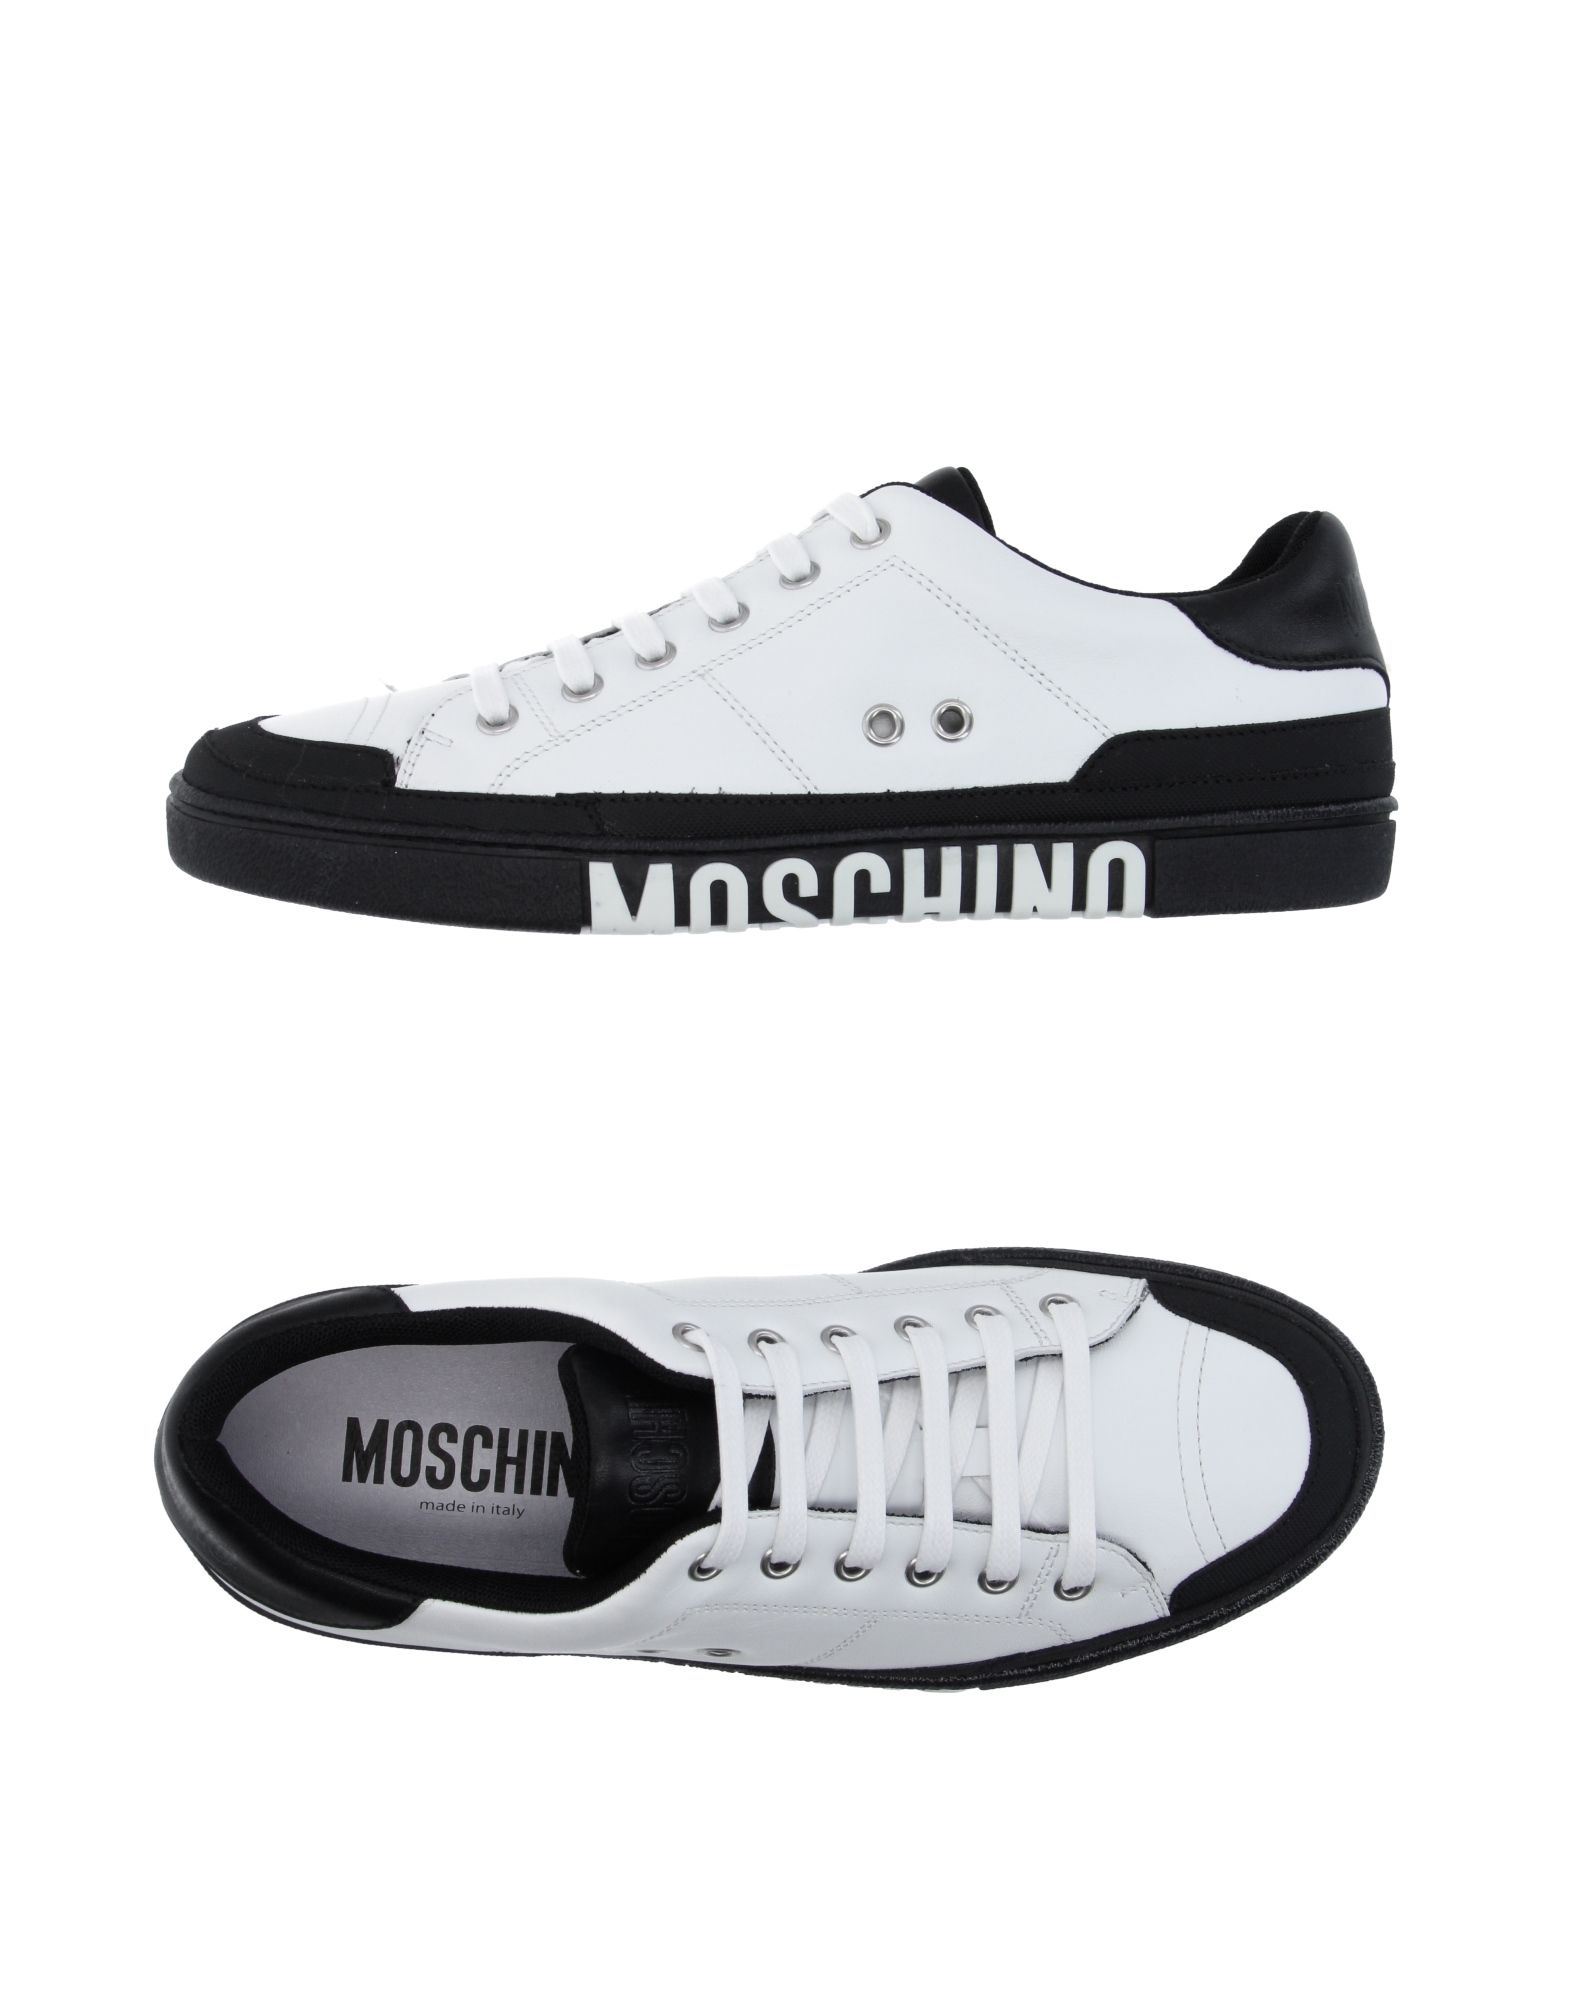 058b39efed278 Moschino  Black   White Low Sneakers on Storenvy